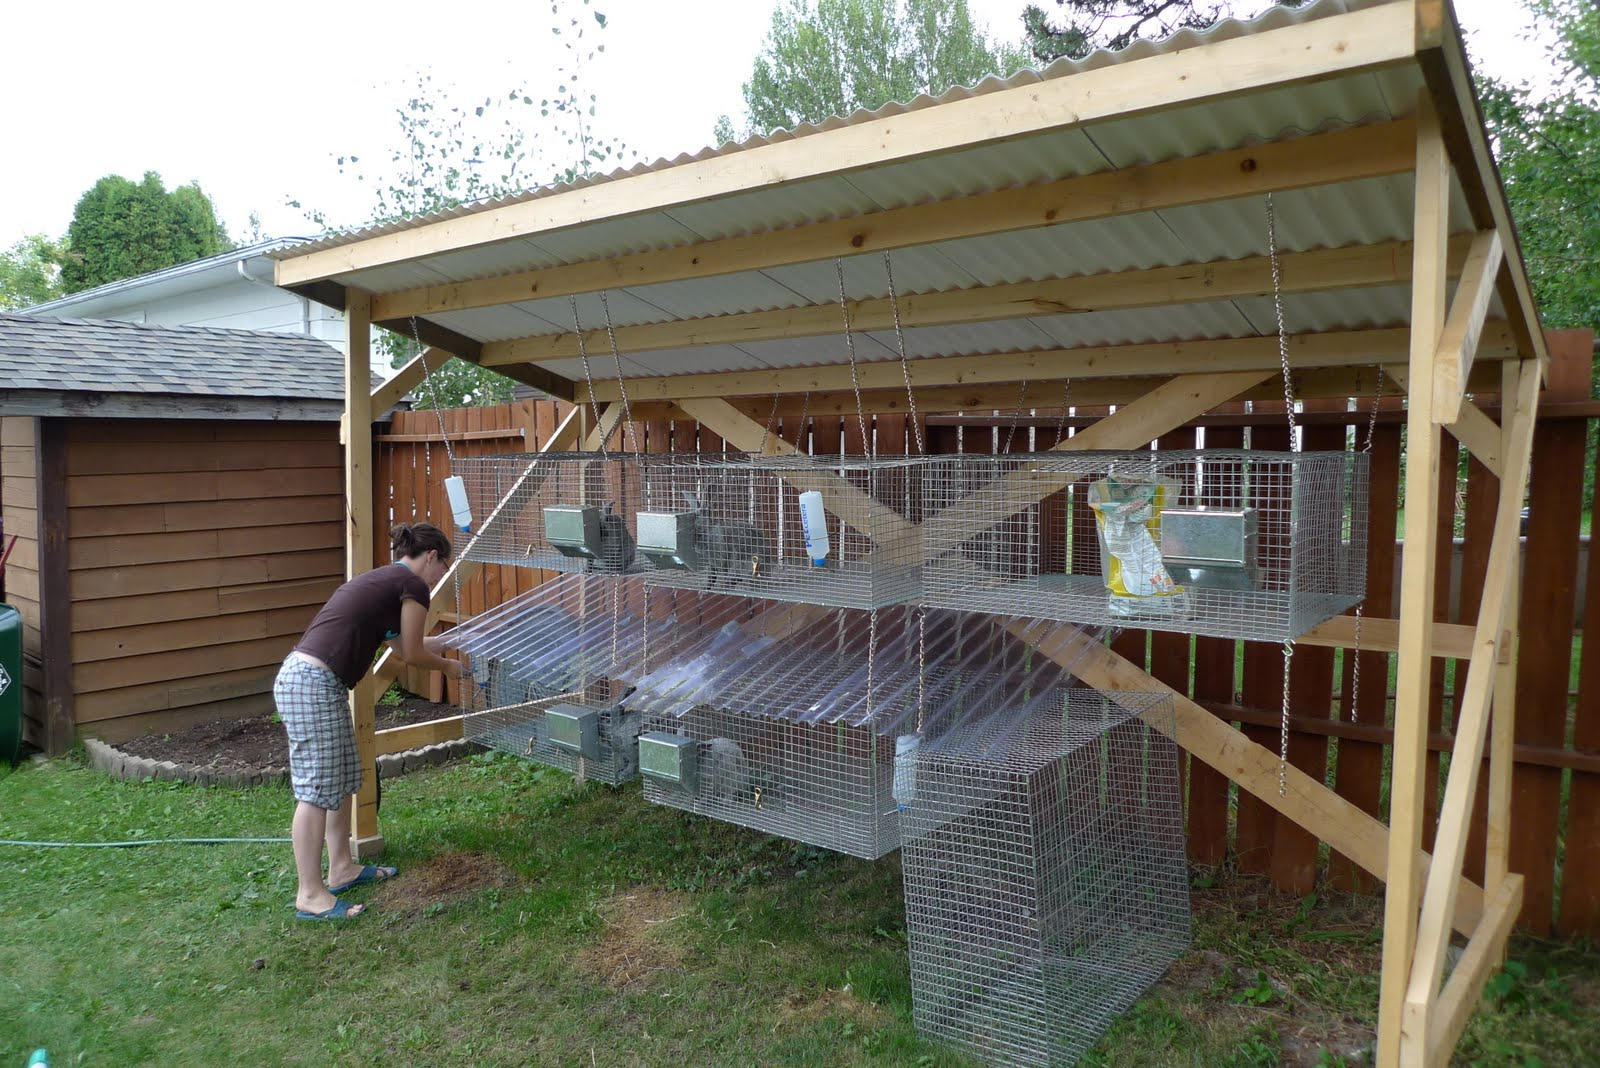 Building a Rabbit Hutch